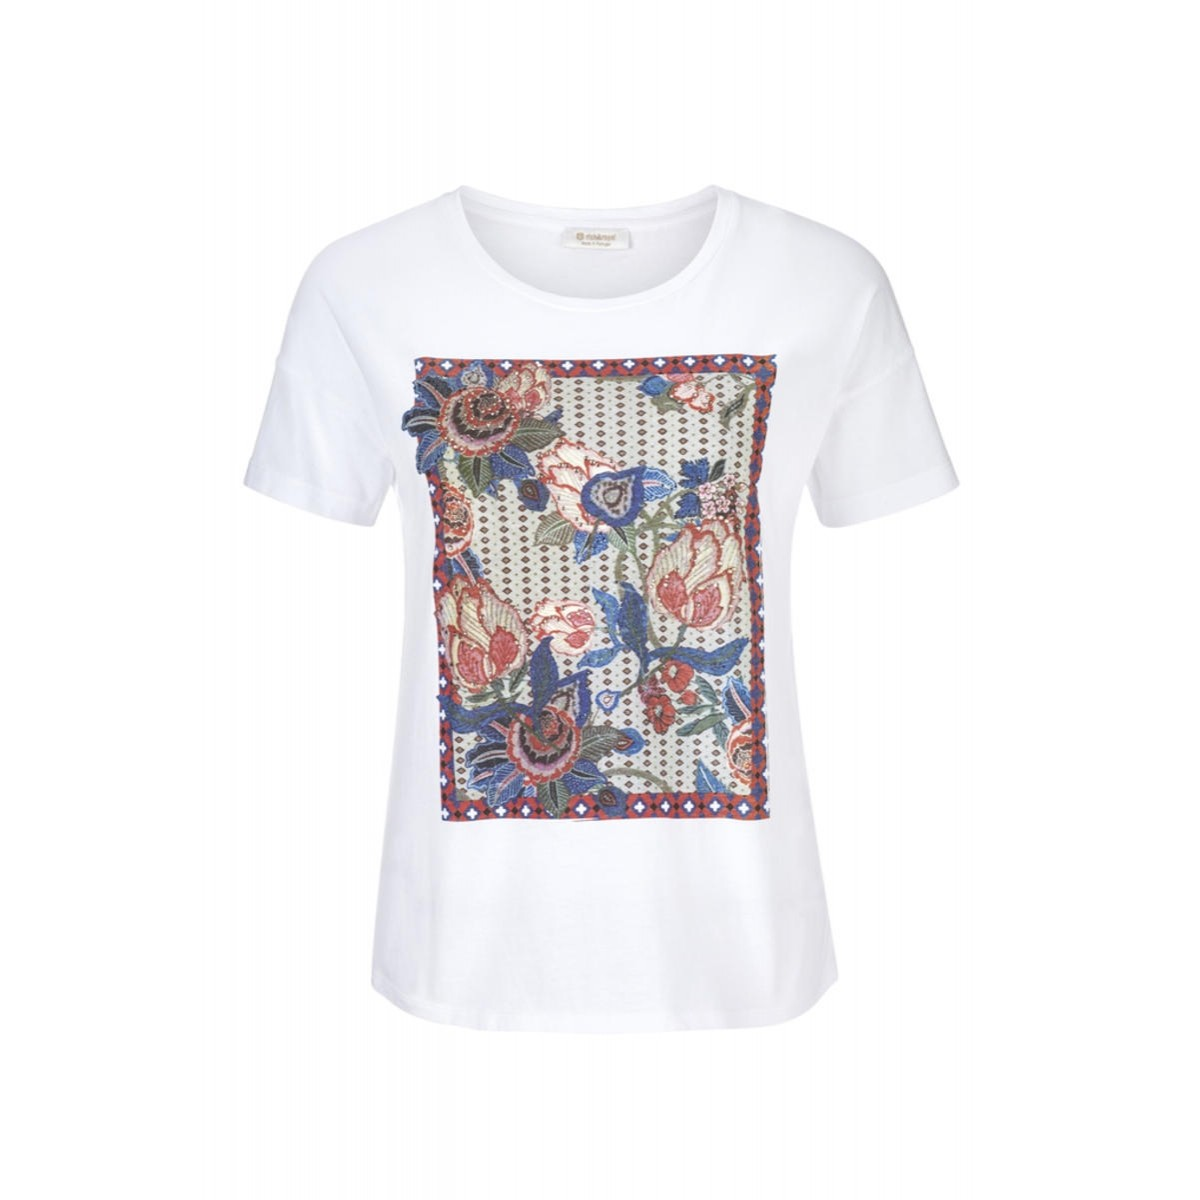 d4bc1b1388d4 Pattern mix Tee by Rich   Royal - blue green red white - XS